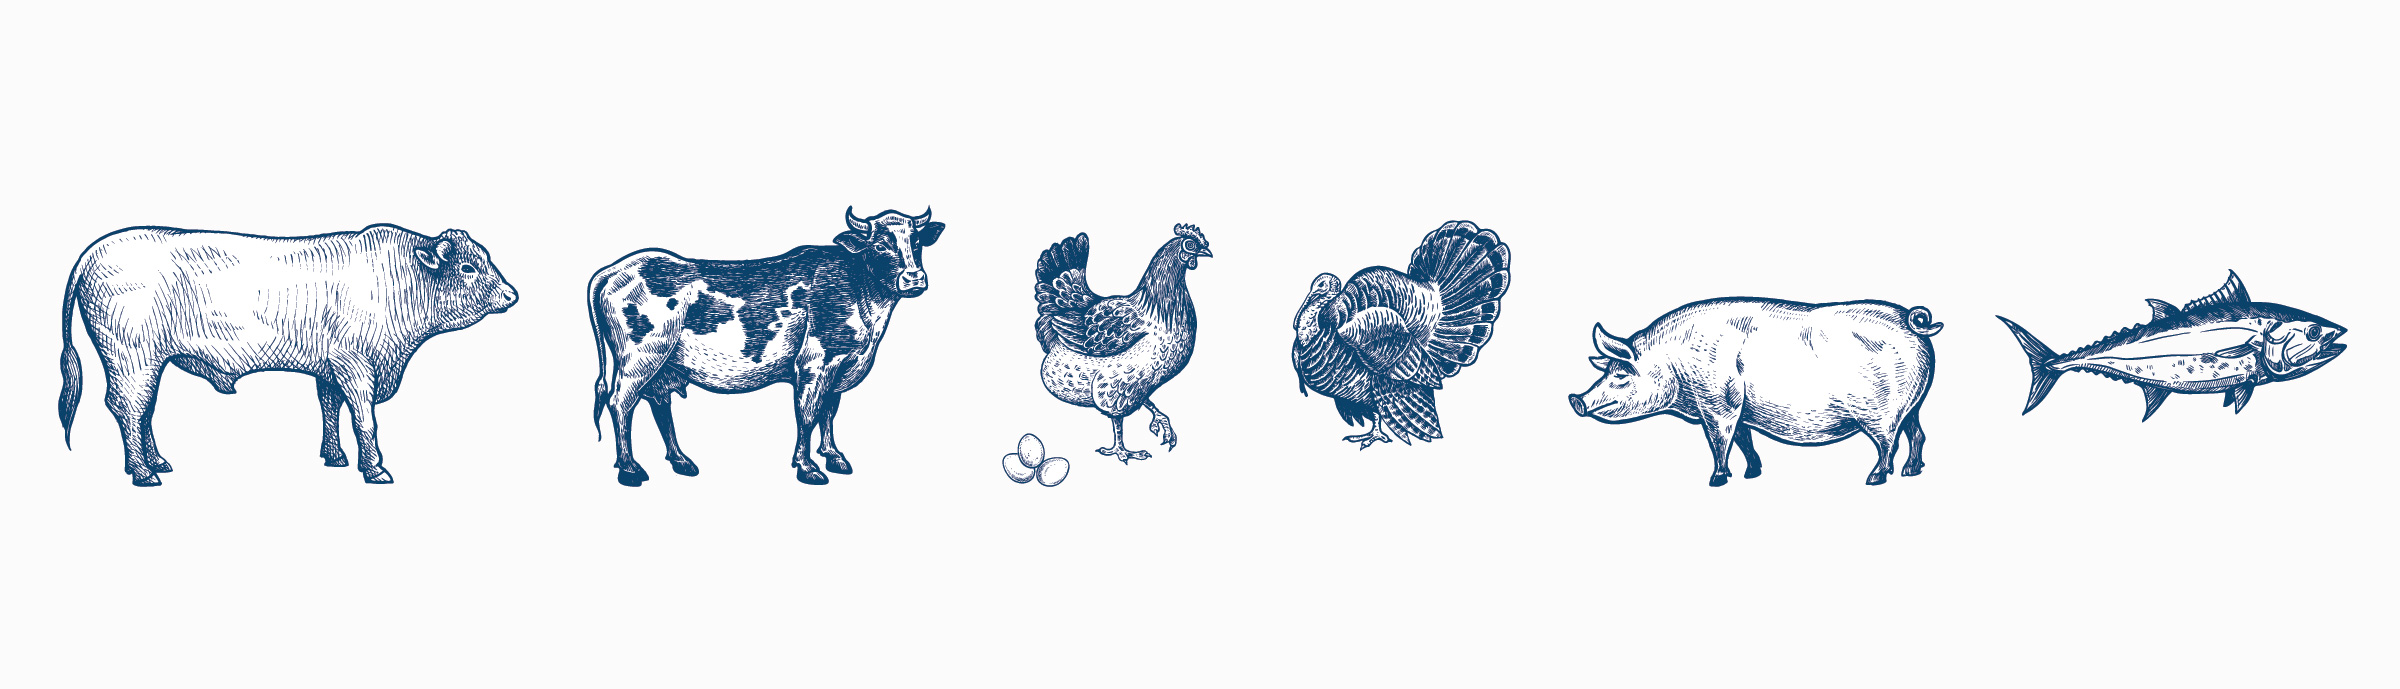 Livestock animals beef, dairy cow, layer hen, poultry, swine, aquaculture